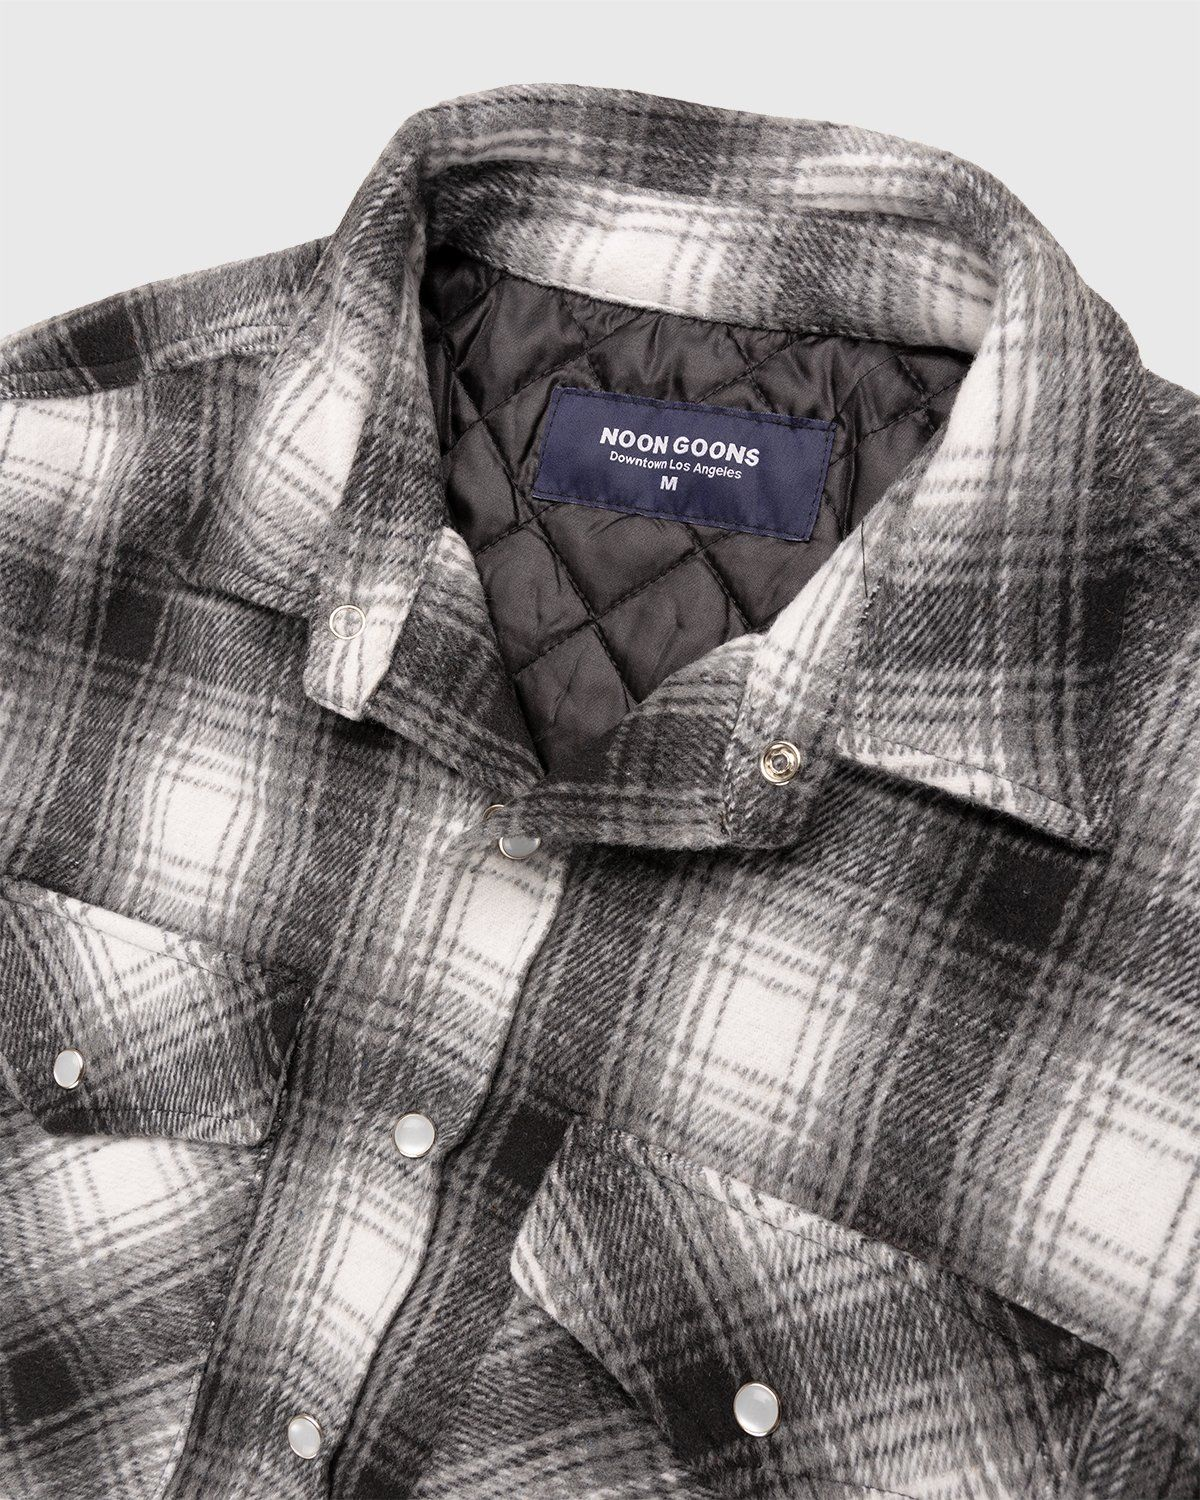 Noon Goons — Tahoe Quilted Flannel Grey - Image 3